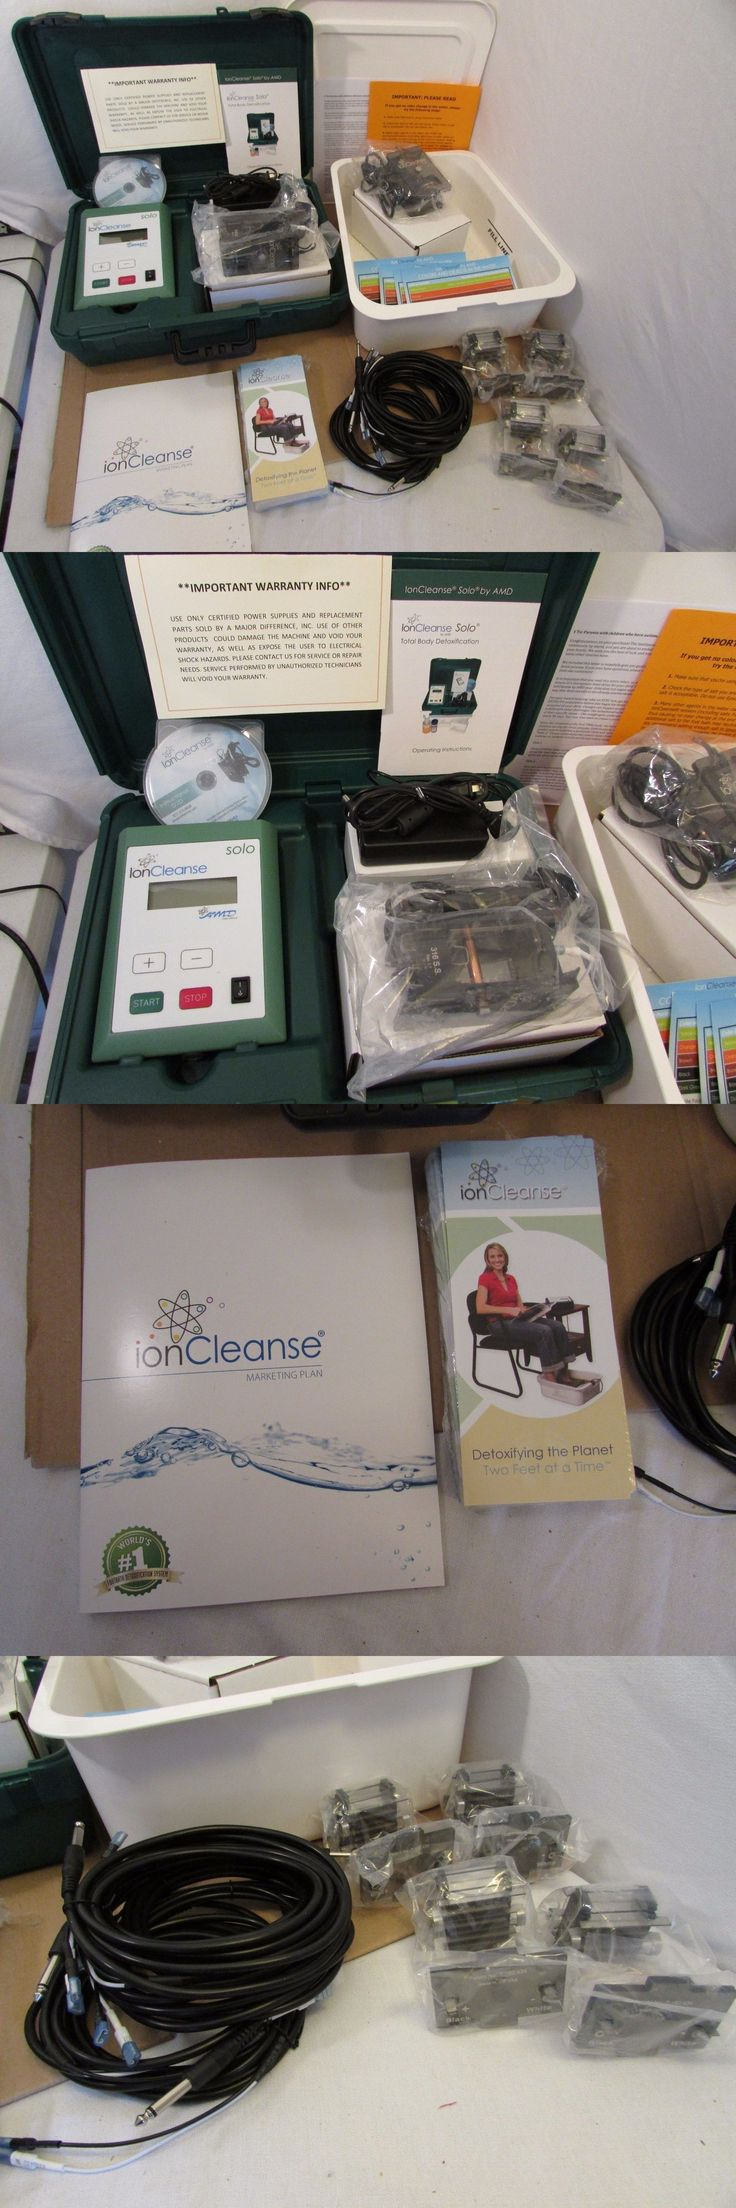 Ion Foot Baths: Amd Ioncleanse Solo Ionic Detox Foot Bath Kit Ion Cleanse - Bundle W Extras -> BUY IT NOW ONLY: $1825 on eBay!